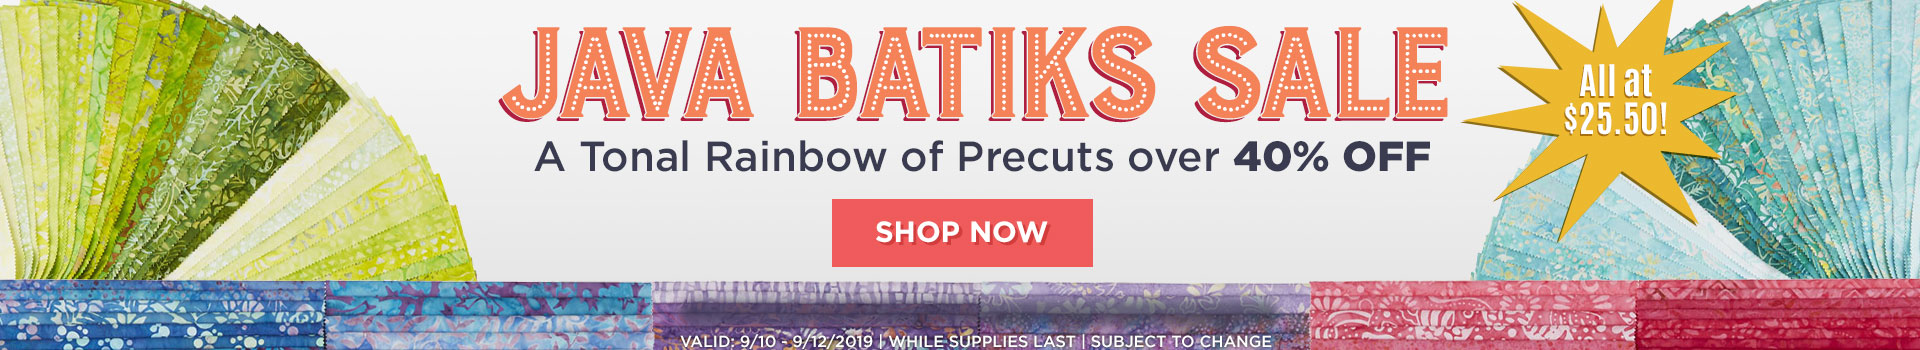 Great prices & selection | Stunning quilting precuts & quilt